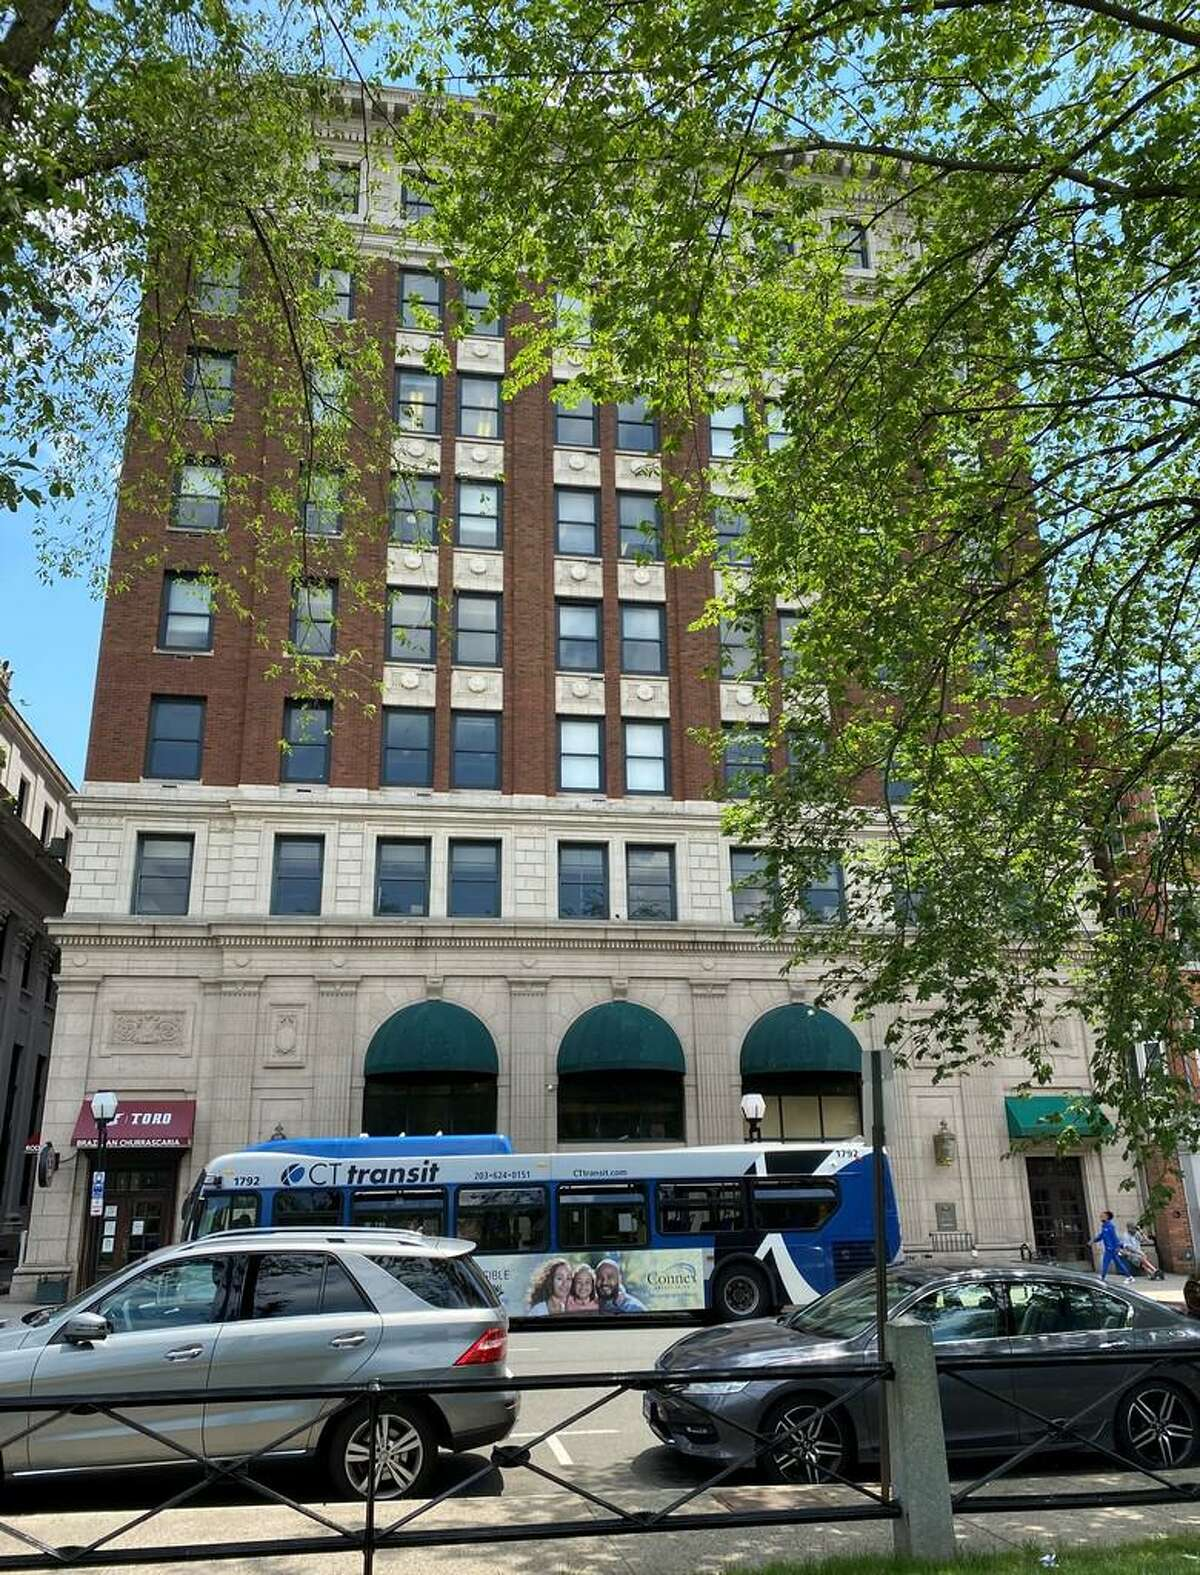 Jacob and Josef Feldman of MOD Equities, which bought the 8-story building at 129 Church St. six years ago for $6.9 million, are proposing an adaptive reuse of the 1912 structure.